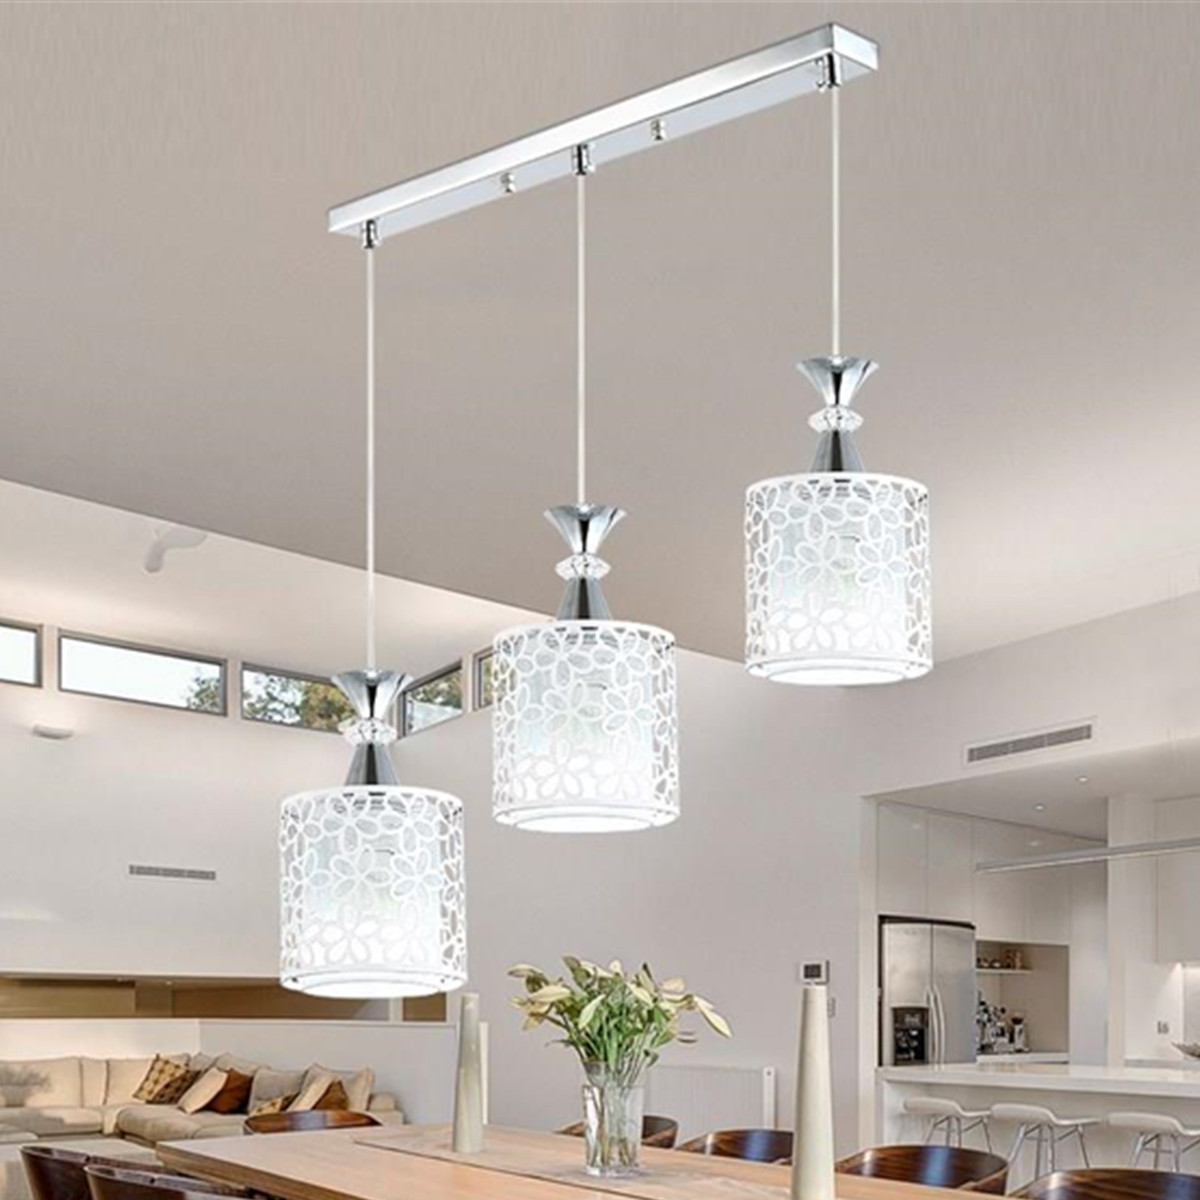 Modern Crystal Ceiling Lamps LED Lamps Living Room Dining